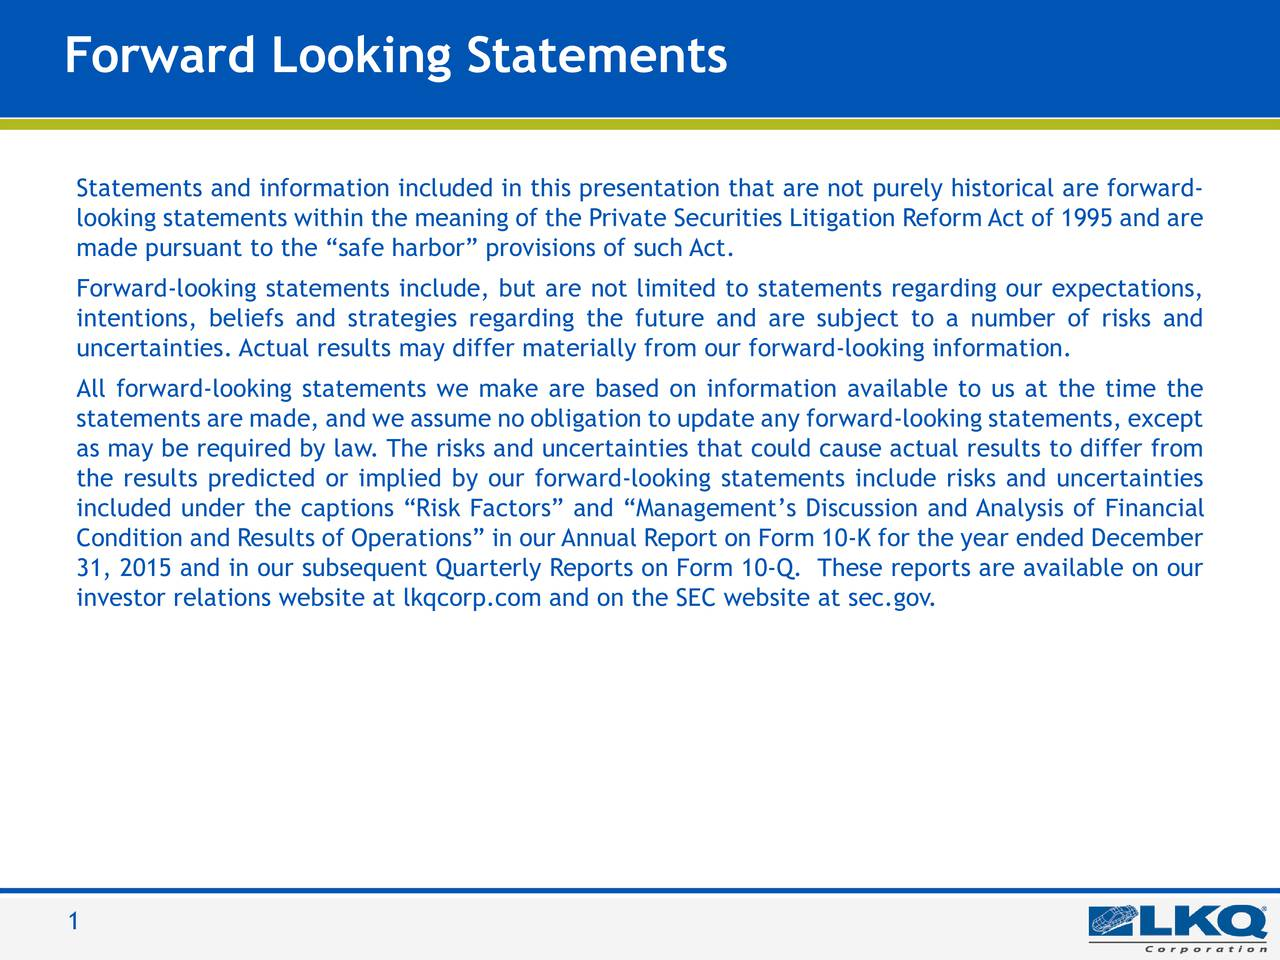 LKQ Blue Statements and information included in this presentation that are not purely historical are forward- 0 | 85 | 180 looking statements within the meaning of the Private Securities Litigation Reform Act of 1995 and are made pursuant to the safe harbor provisions of such Act. LKQ Green 176 | 186 | 31 Forward-looking statements include, but are not limited to statements regarding our expectations, intentions, beliefs and strategies regarding the future and are subject to a number of risks and LKQ Silver uncertainties. Actual results may differ materially from our forward-looking information. 132 | 137 | 140 All forward-looking statements we make are based on information available to us at the time the statements are made, and we assume no obligation to update any forward-looking statements, except Keystone Gold 255 | 188 | 31 as may be required by law. The risks and uncertainties that could cause actual results to differ from the results predicted or implied by our forward-looking statements include risks and uncertainties KeyKool Secondary included under the captions Risk Factors and Managements Discussion and Analysis of Financial Blue Condition and Results of Operations in our Annual Report on Form 10-K for the year ended December 137 | 173 | 219 31, 2015 and in our subsequent Quarterly Reports on Form 10-Q. These reports are available on our KeyKool investor relations website at lkqcorp.com and on the SEC website at sec.gov. Tertiary Blue 216 | 232 | 241 PicKYourPart Oraange 211 | 77 | 30 210 | 35 | 42 LKQ Gray 62 | 70 | 70 1